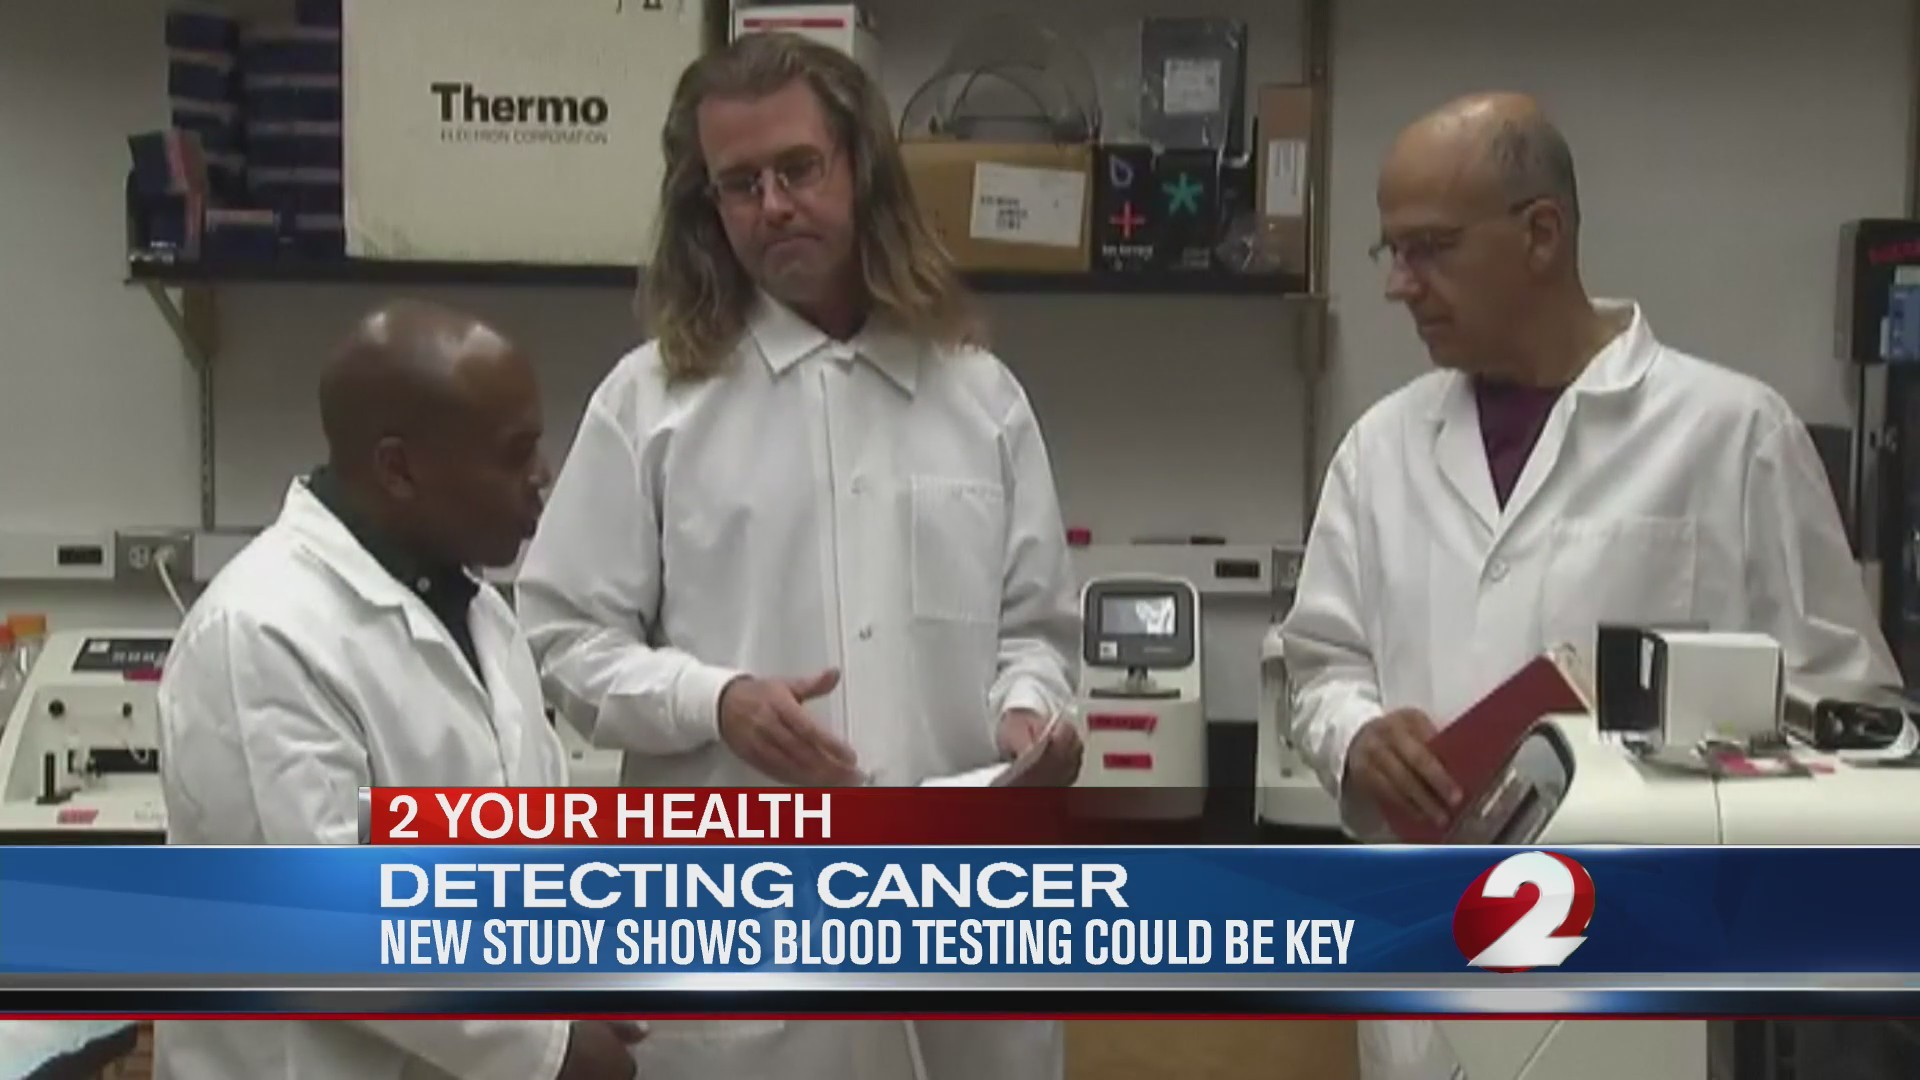 Detecting Cancer: New study shows blood testing could be key